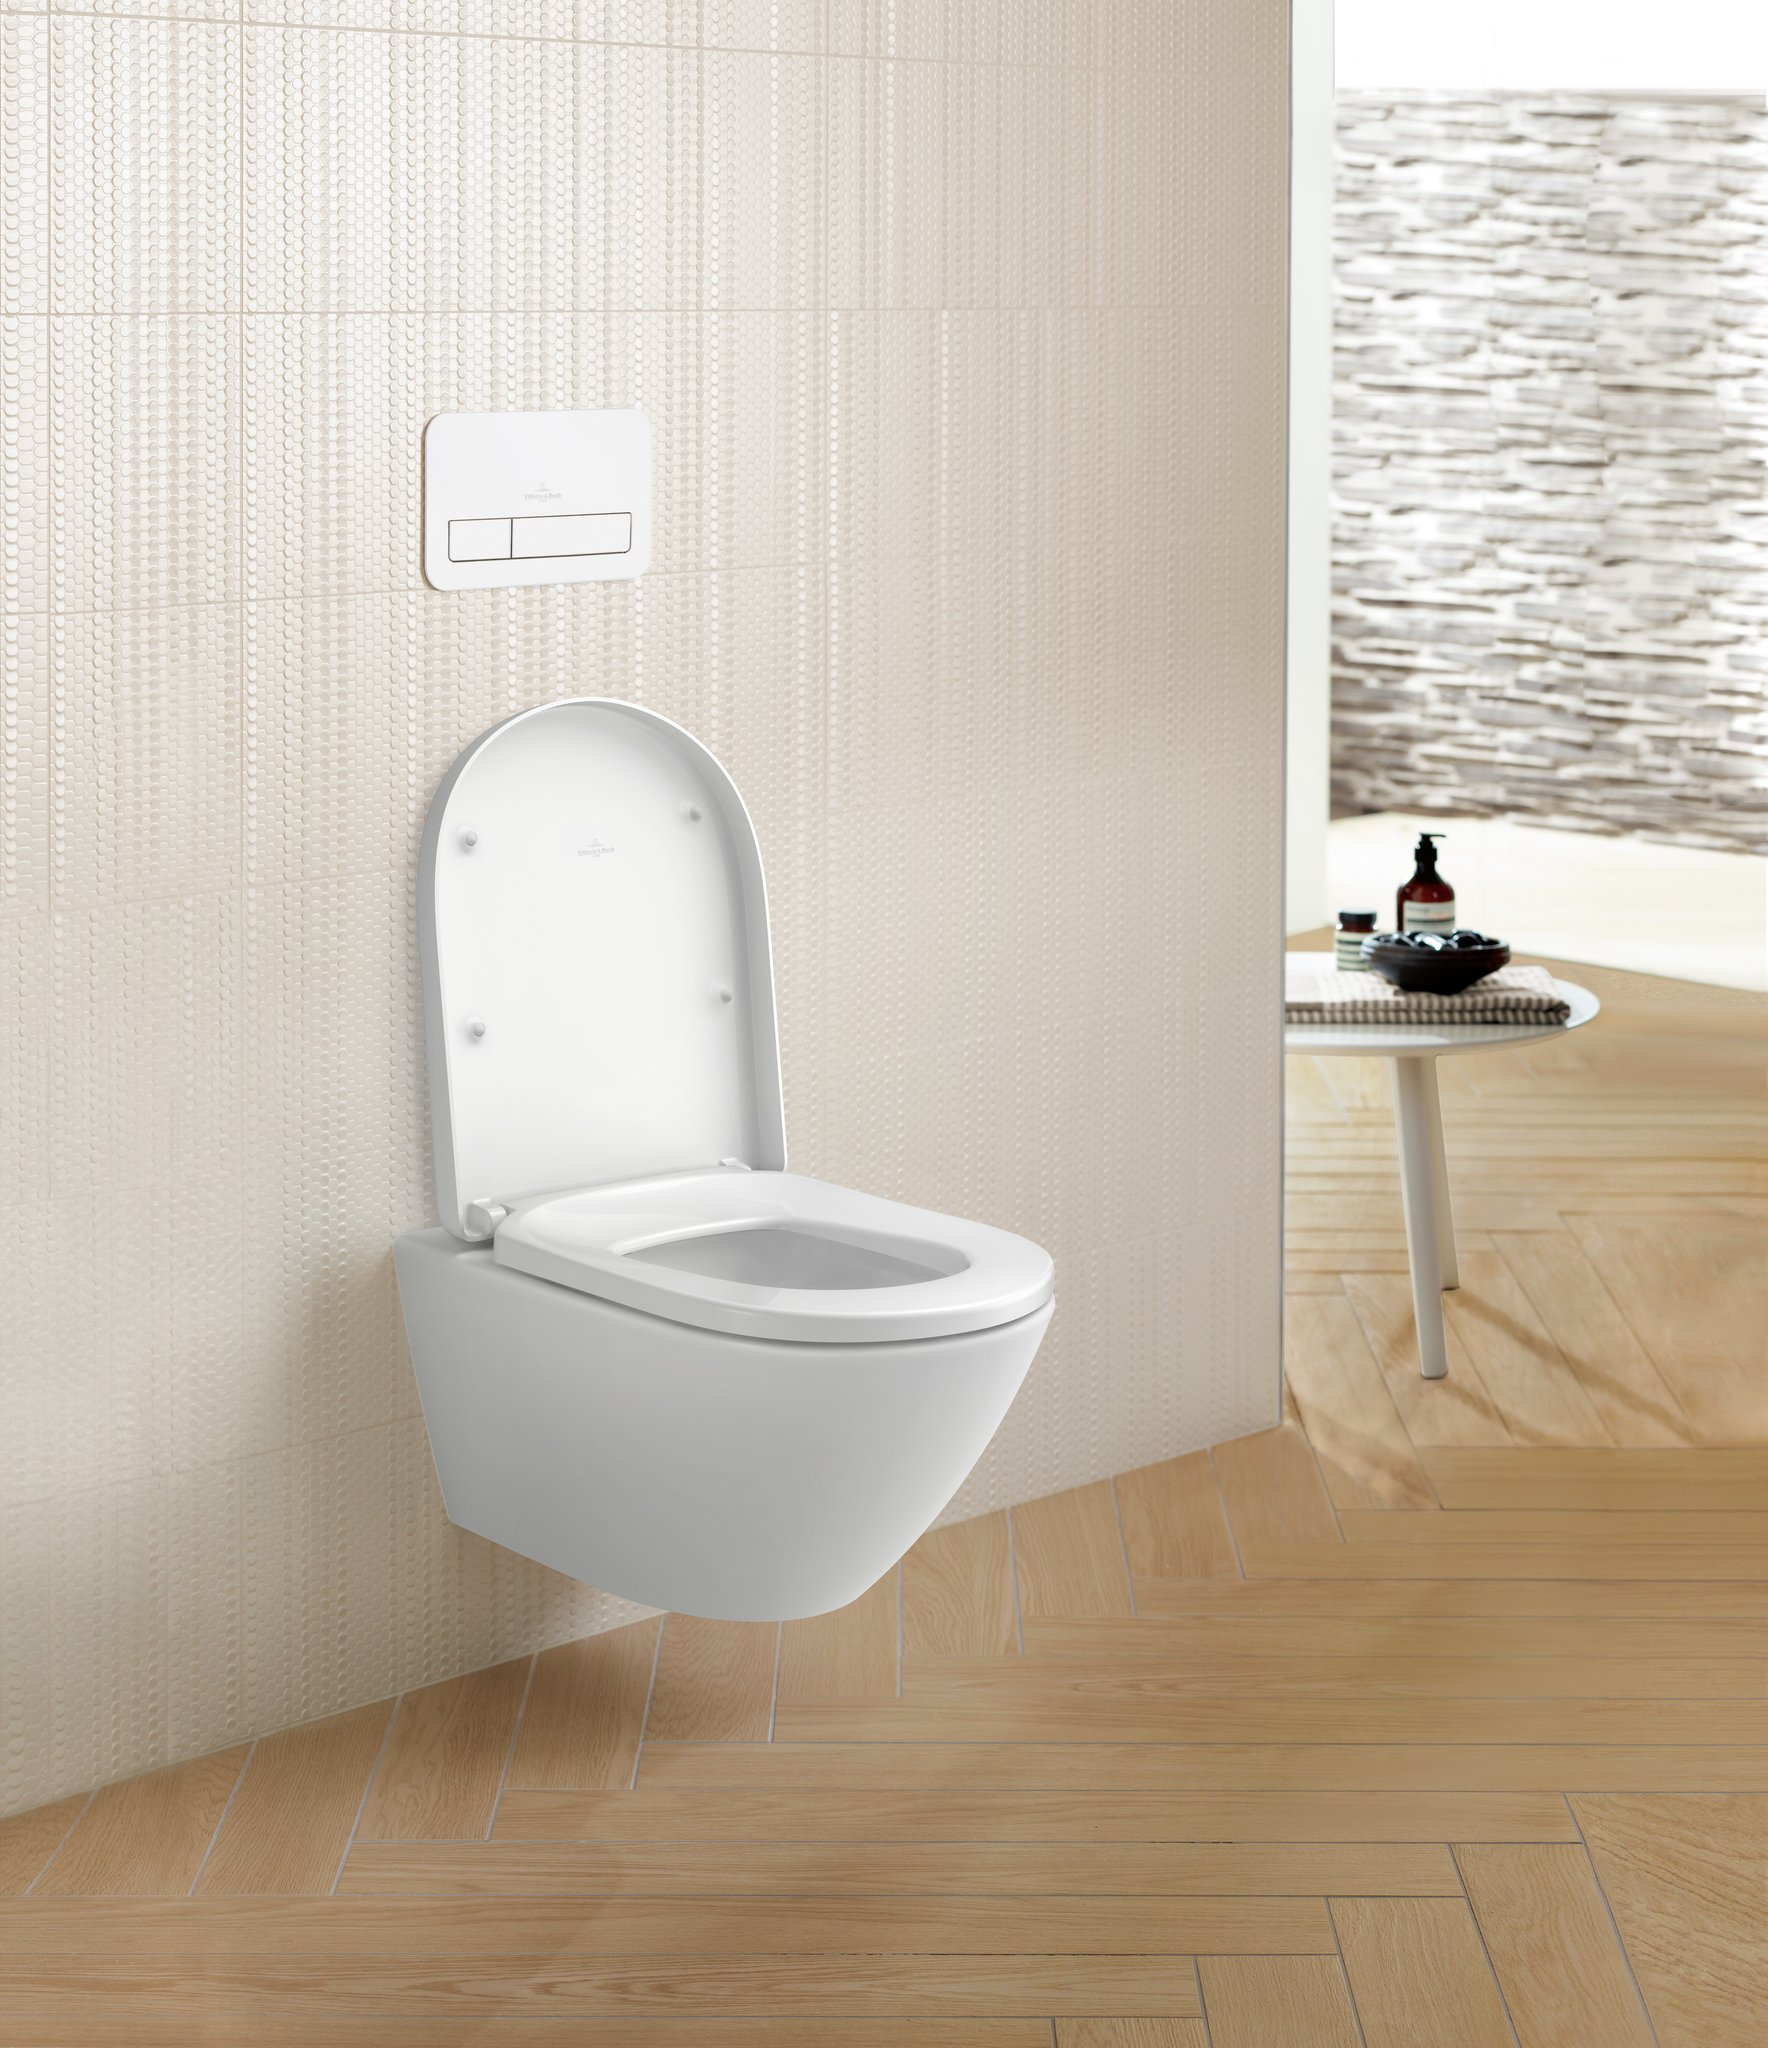 Subway 2 0 Toilet Seat And Cover Comfort Oval 8m34s1